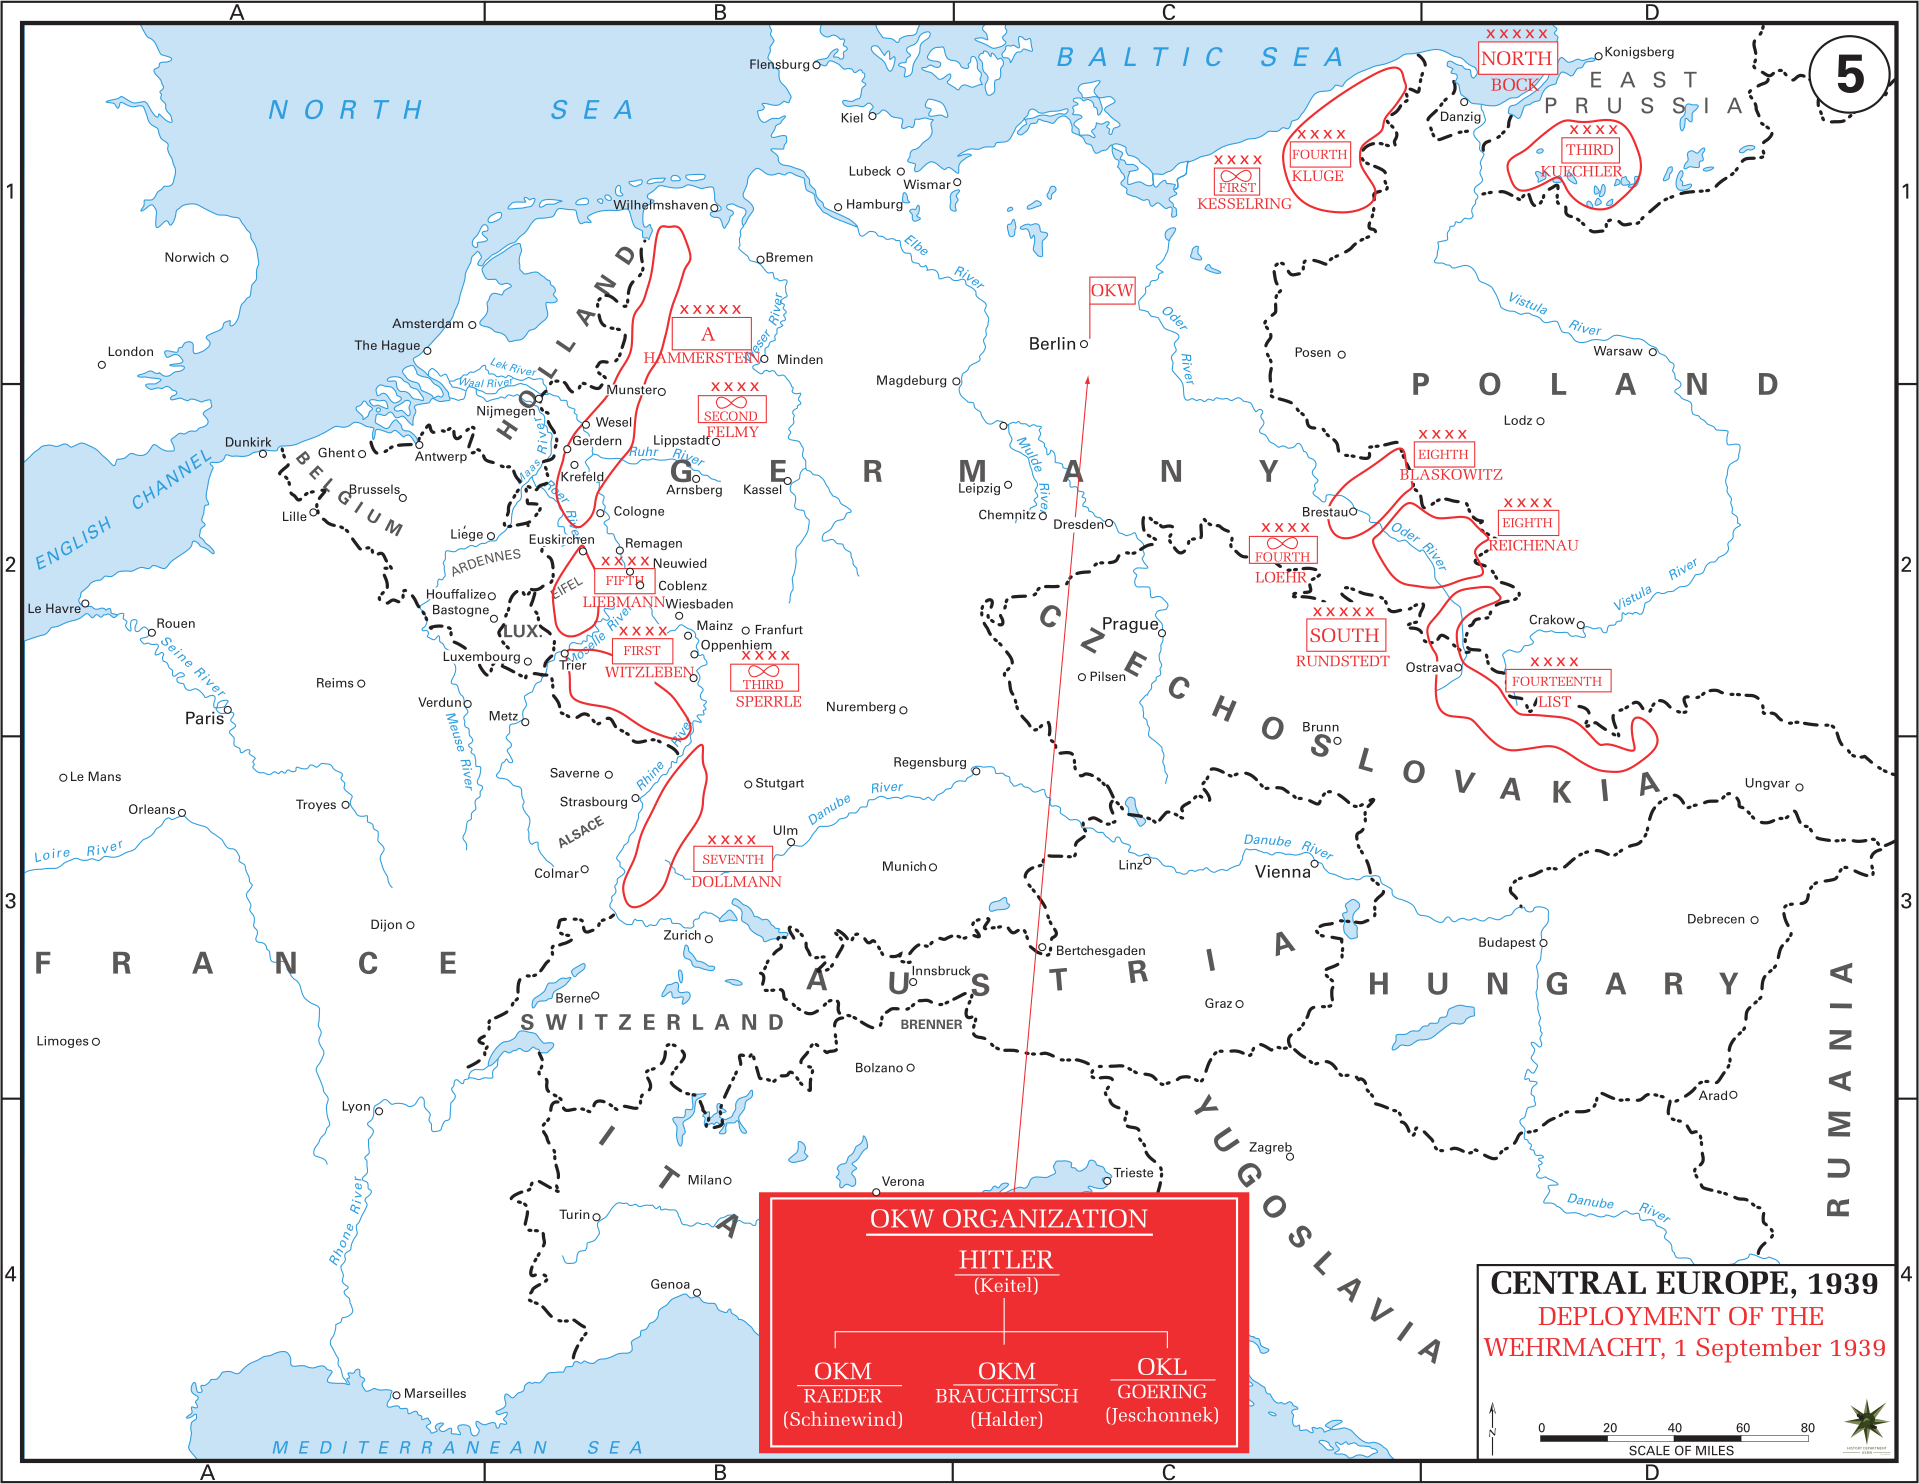 Eastern front maps of world war ii inflab medium campaign in poland deployment of the wehrmacht 1 september 1939 gumiabroncs Choice Image